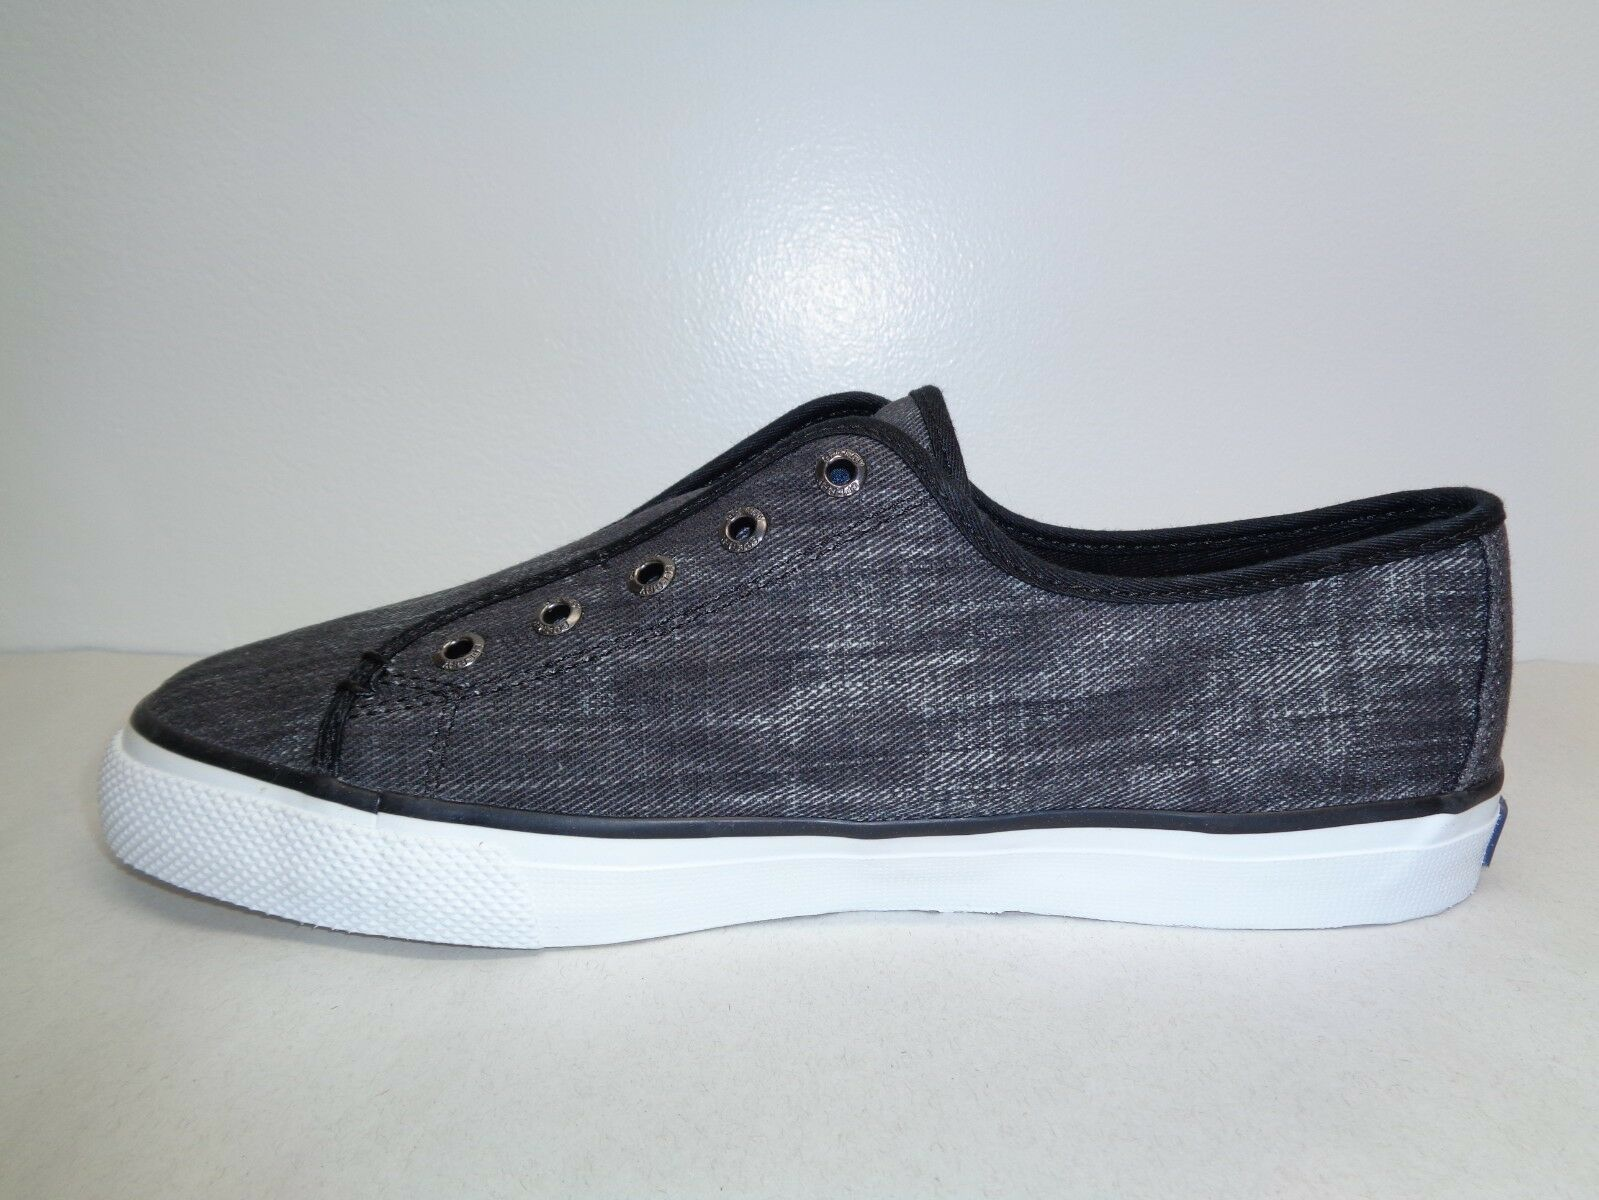 Sperry Sperry Sperry Top Sider Size 8 M SEACOAST RIPSTOP Black Sneakers New Womens shoes d04266